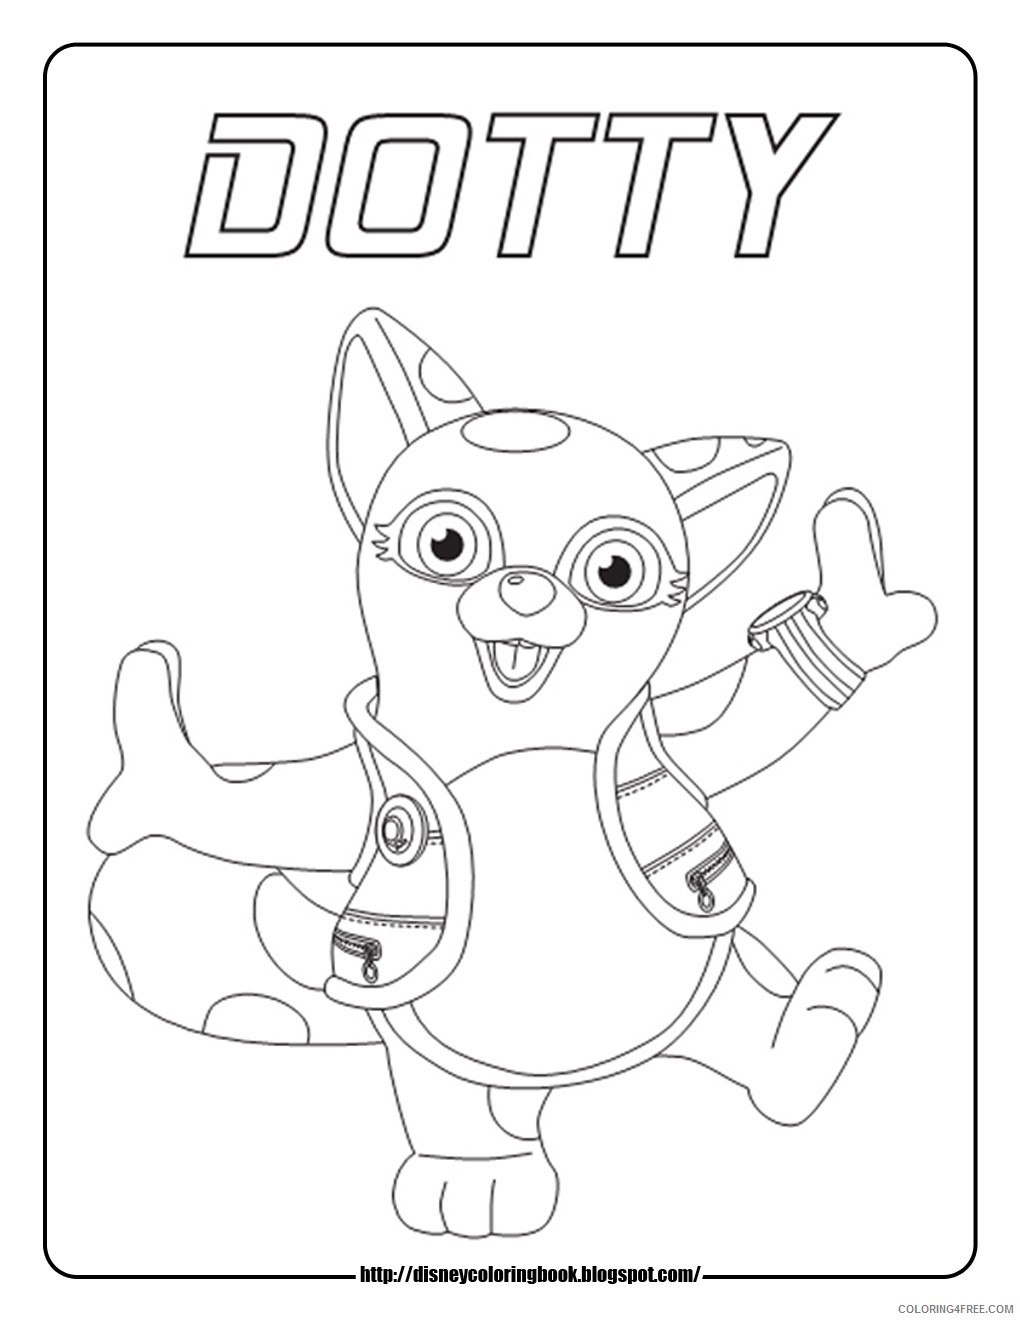 disney junior coloring pages dotty Coloring4free